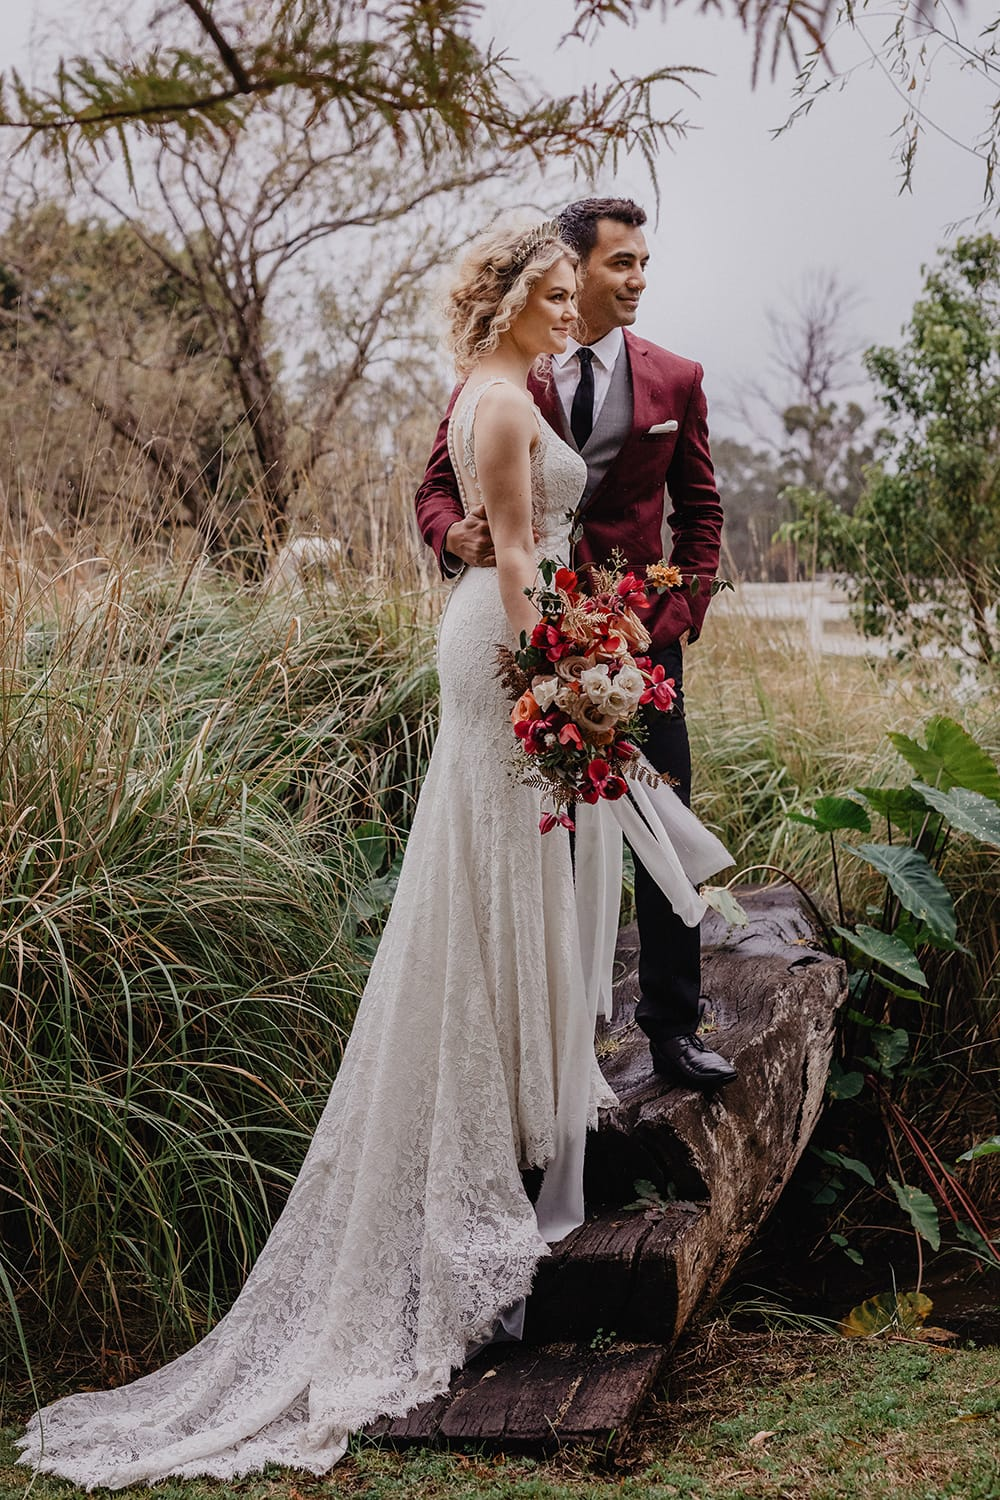 Wildly Romantic Barn Wedding Inspiration | Photography: Anna Pretorius Photography